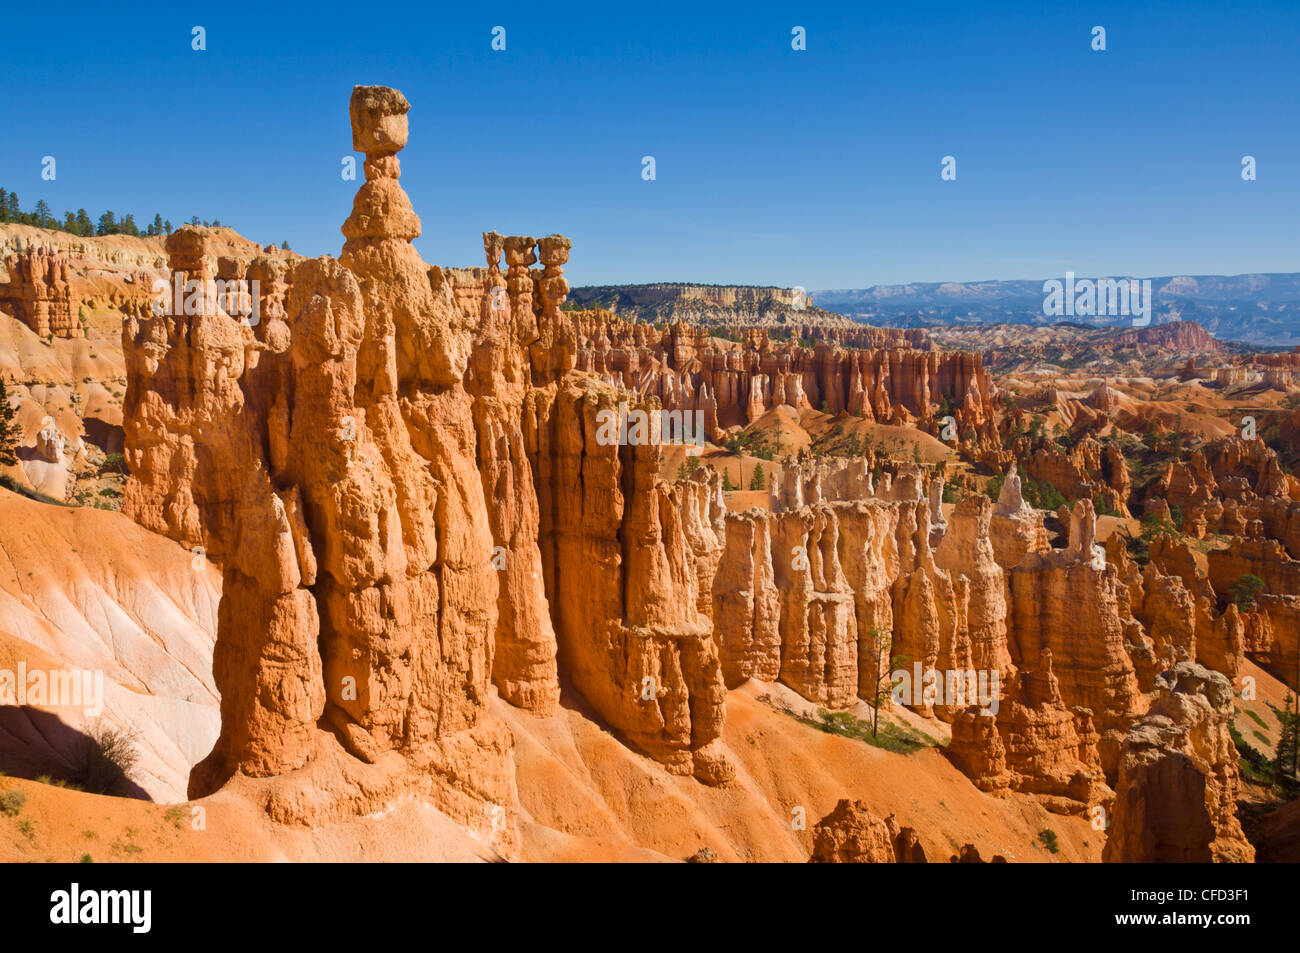 Le marteau de Thor, Bryce Canyon National Park, Utah, USA Photo Stock